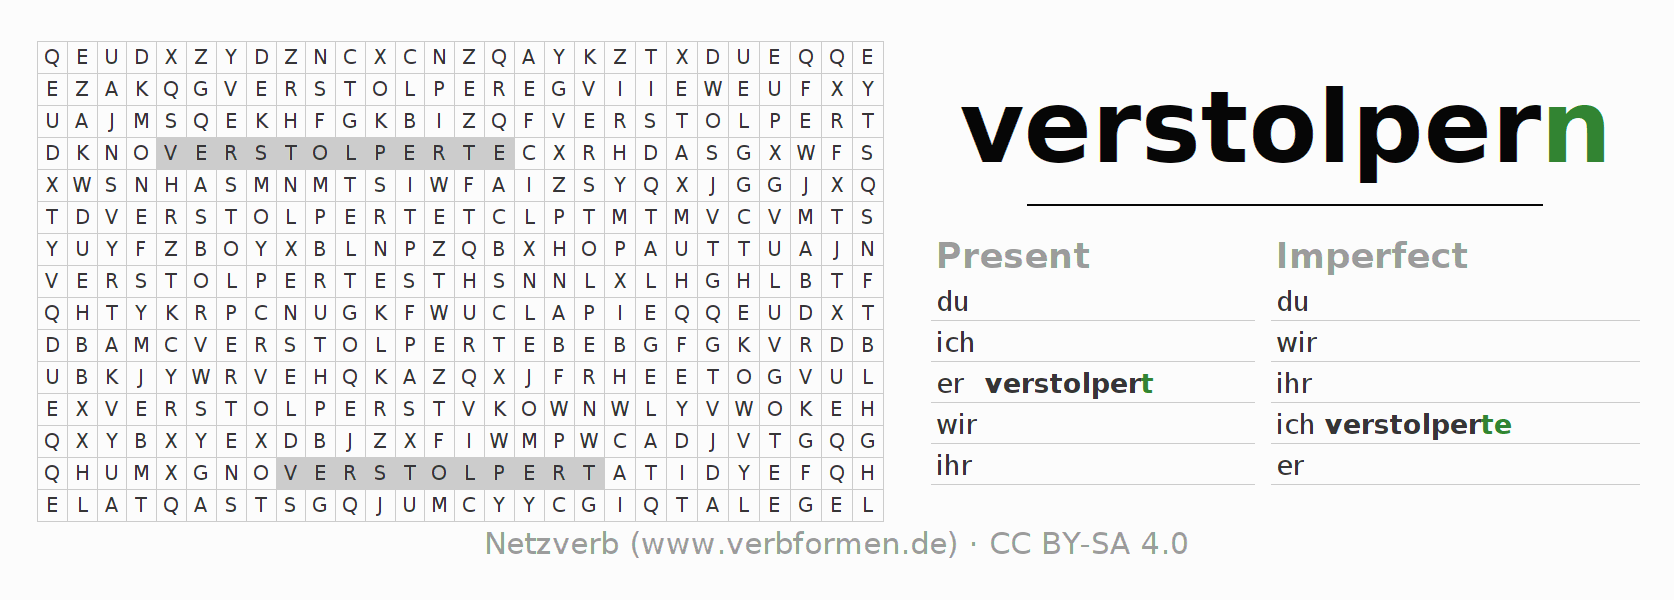 Word search puzzle for the conjugation of the verb verstolpern